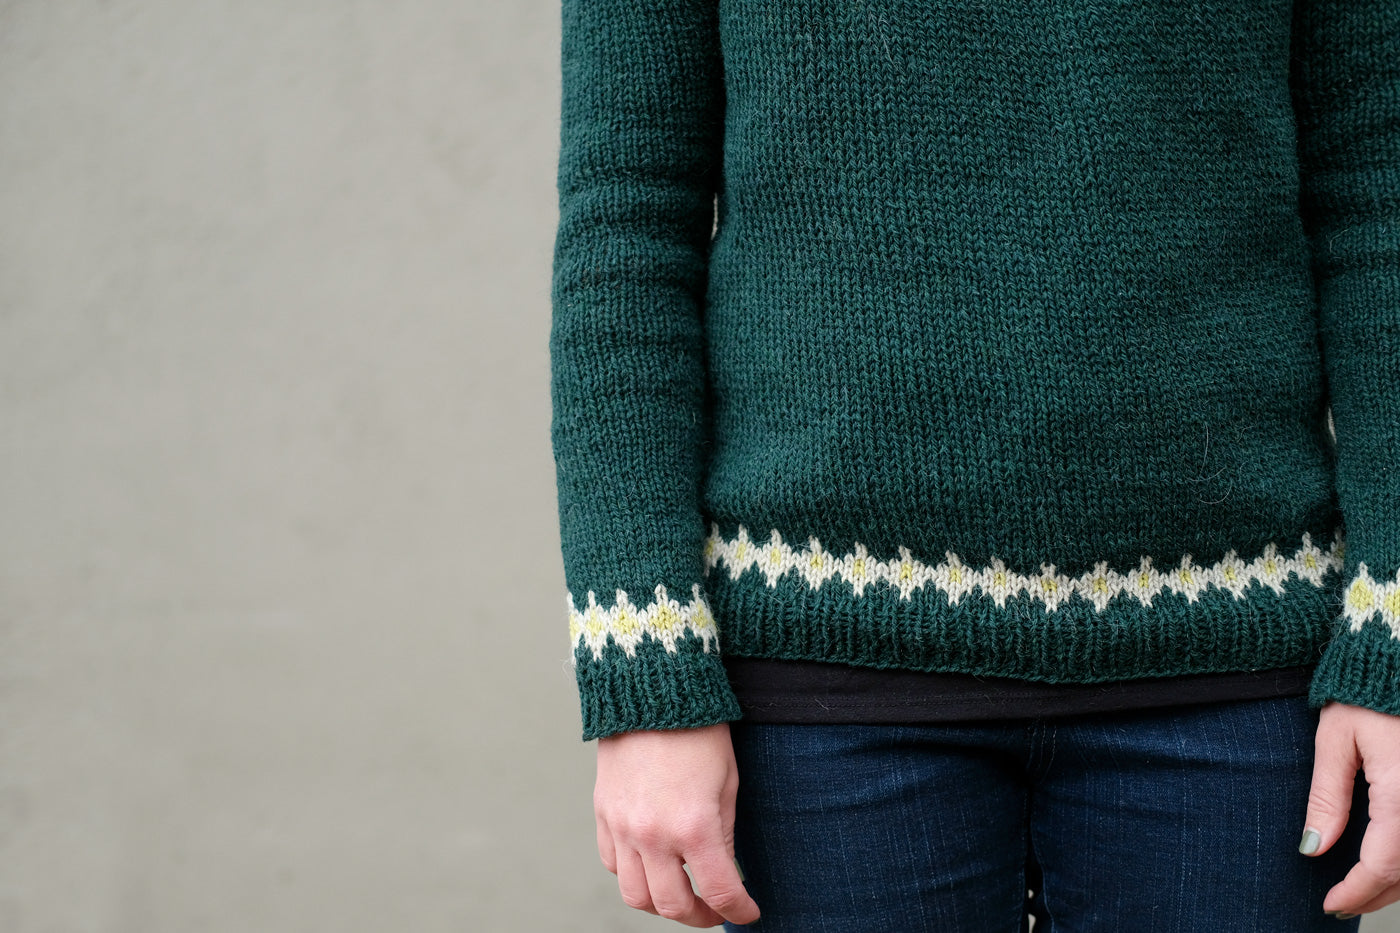 Detail photo of the hemline and cuffs on Jaime's new pullover